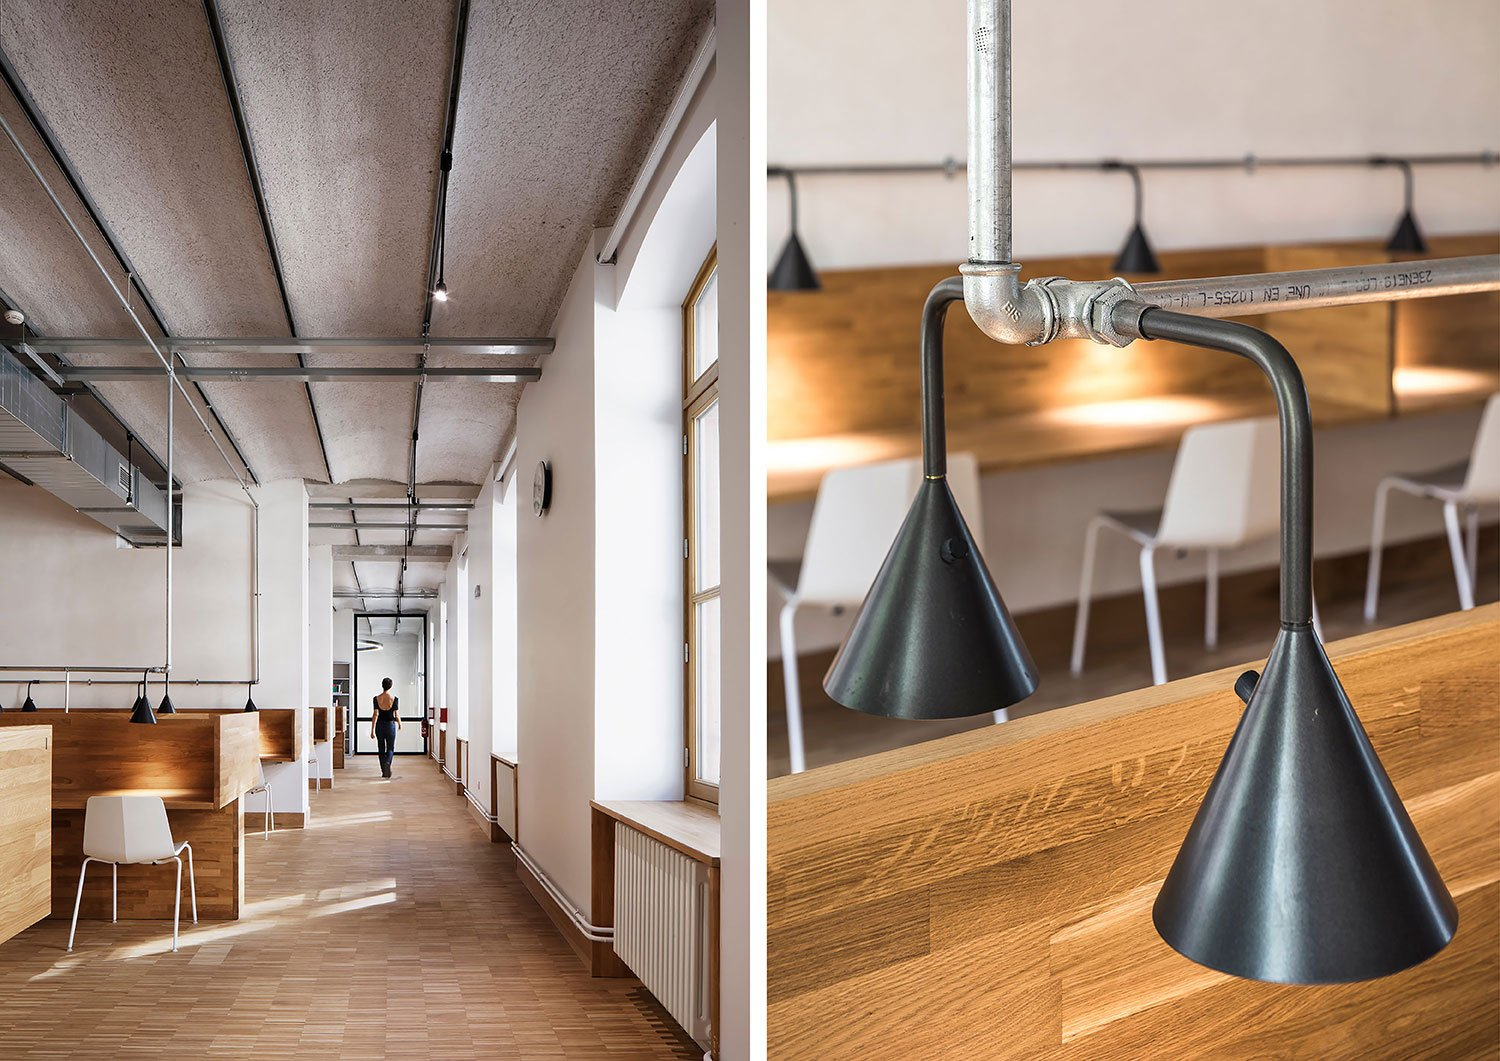 """A certain """"brutalism"""", linked to the visibility of all the utility networks, contrasts with the fine details of the made-to-measure furniture and the nobility of the raw materials (steel, solid oak, floorb Camille Gharbi (left), Sergio Grazia (right)"""